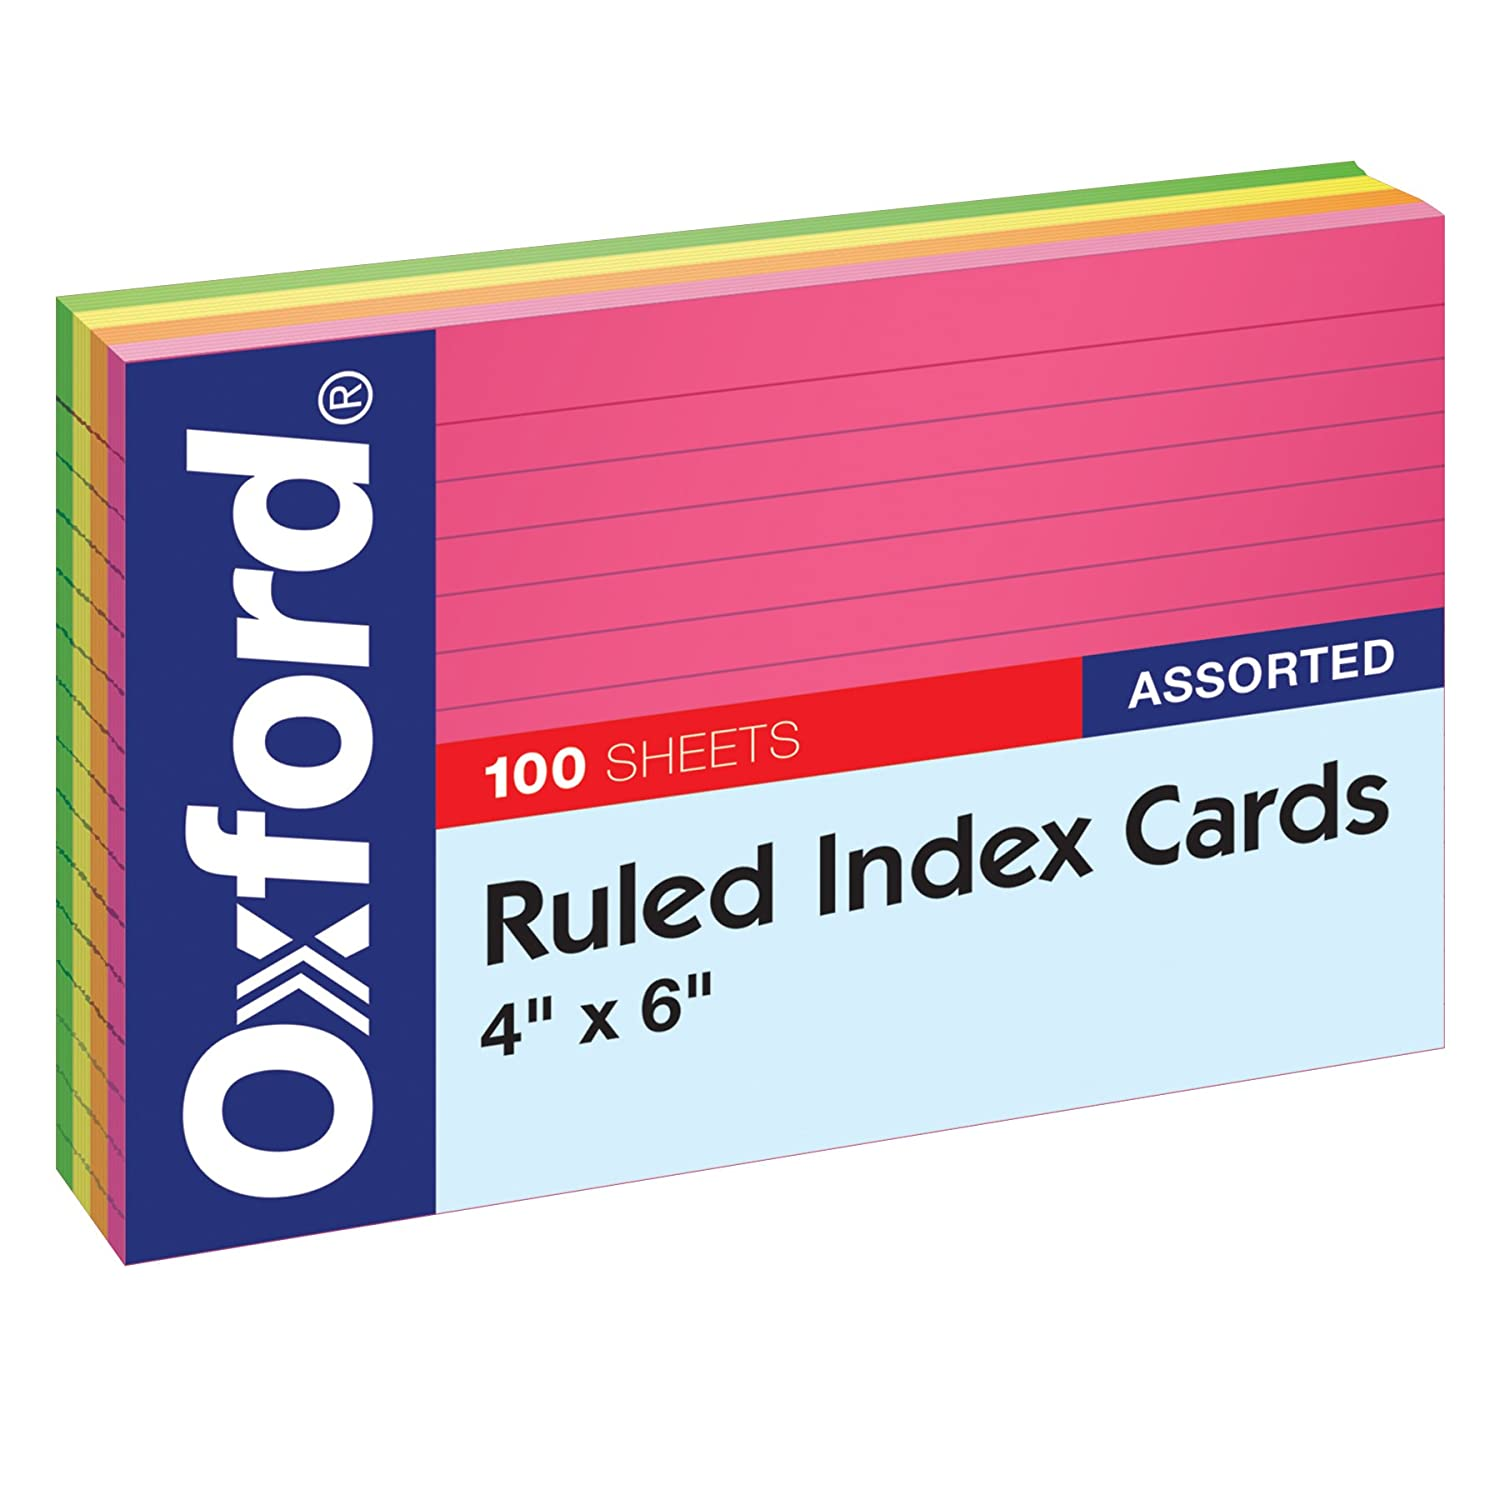 Oxford Neon Index Cards, 4 x 6, Ruled, Assorted Colors, 100 Per Pack (99755EE) 4 x 6 Esselte Corporation